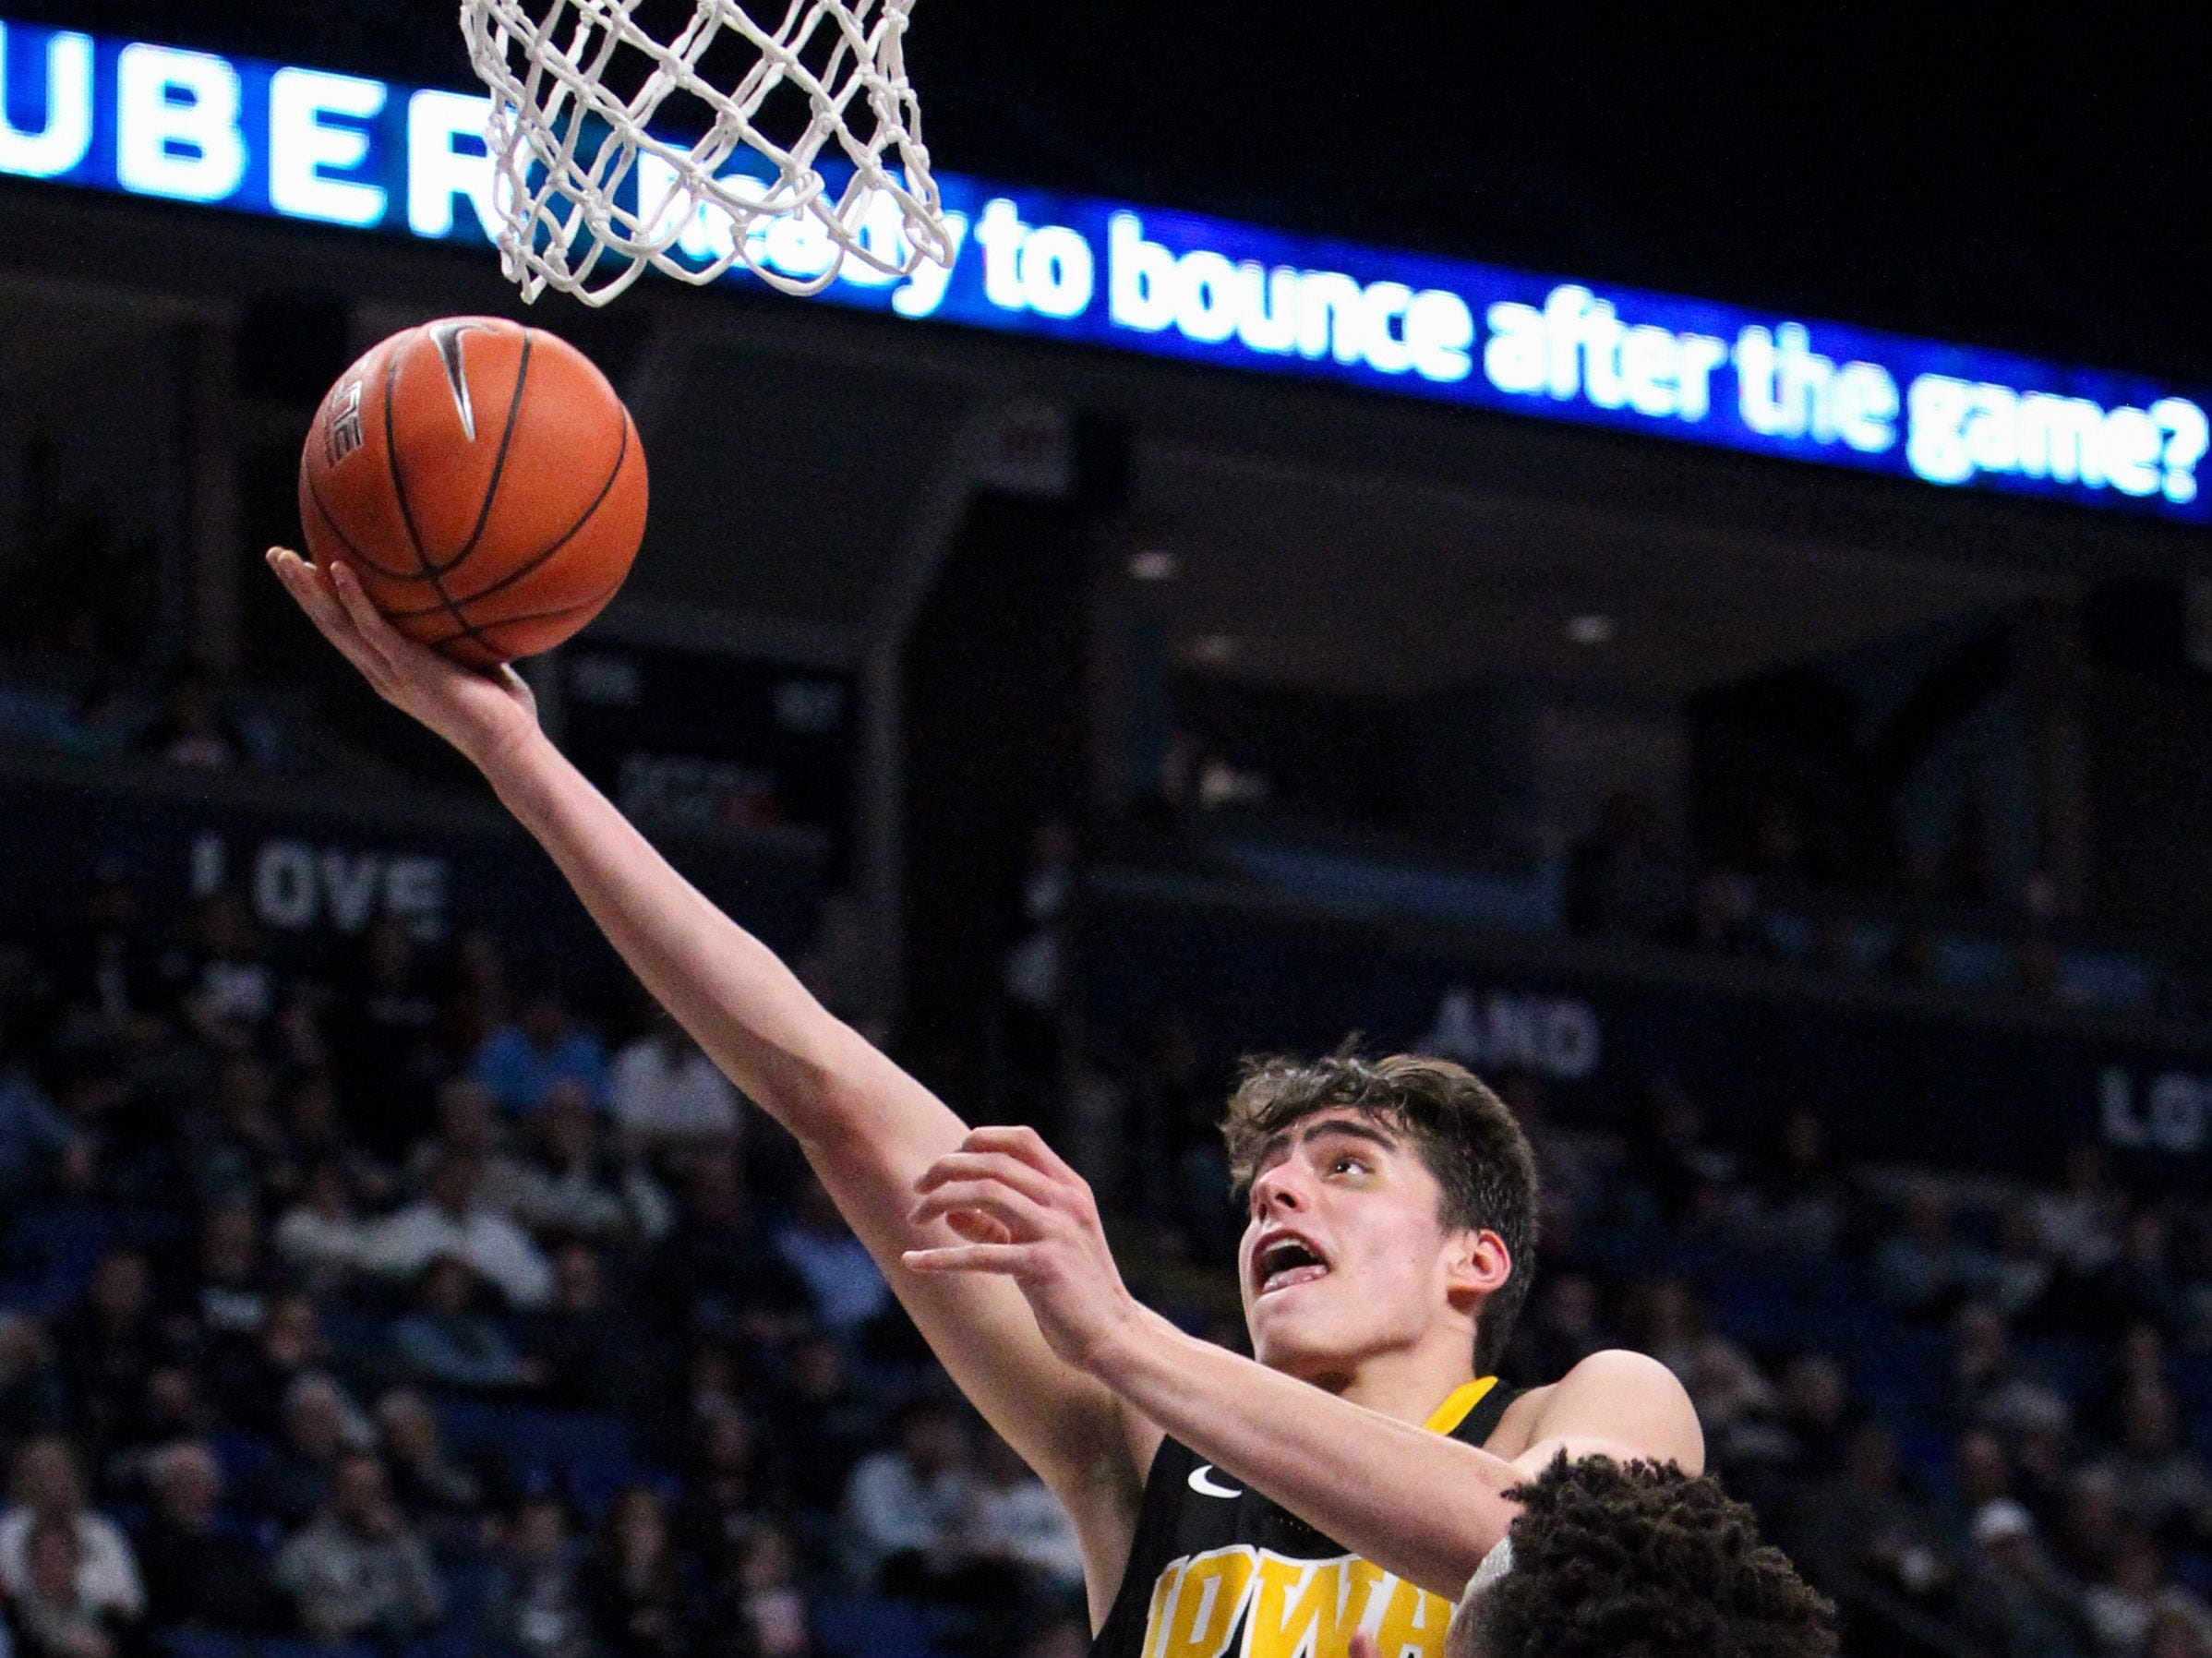 Jan 16, 2019; University Park, PA, USA; Iowa Hawkeyes forward Luka Garza (55) shoots the ball as Penn State Nittany Lions forward Lamar Stevens (11) defends during the second half at Bryce Jordan Center. Mandatory Credit: Matthew O'Haren-USA TODAY Sports